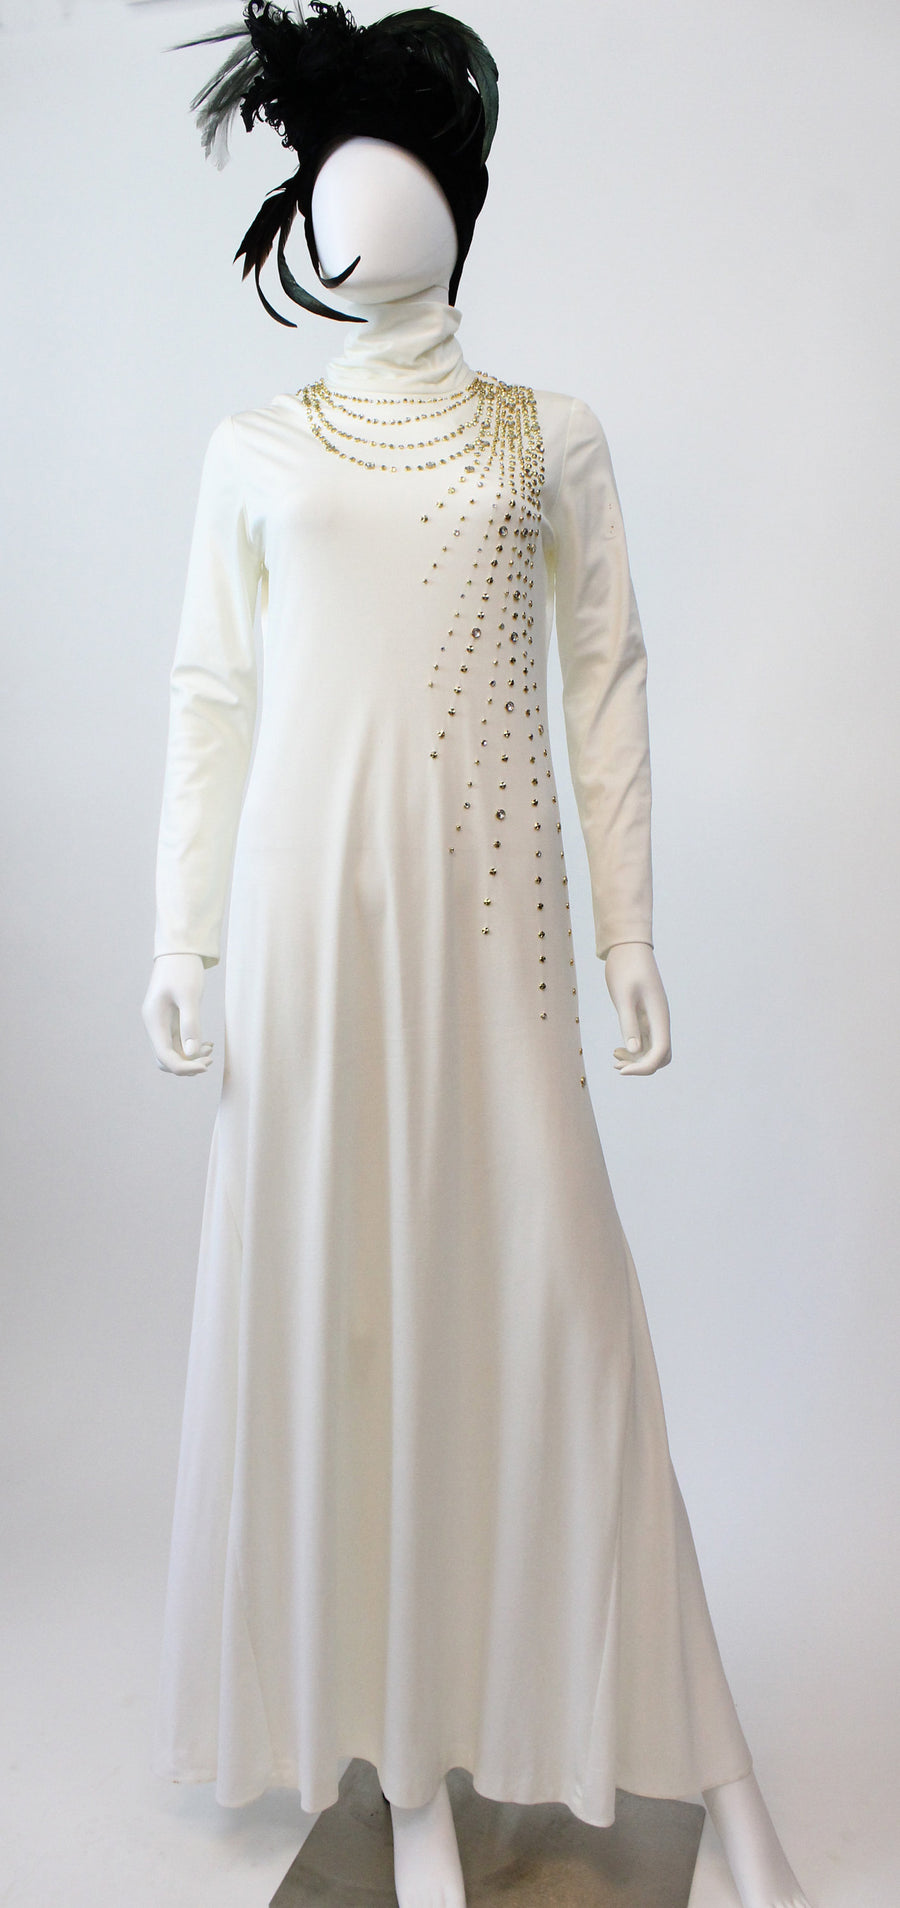 1970s STUDS and rhinestones gown dress medium large | new fall